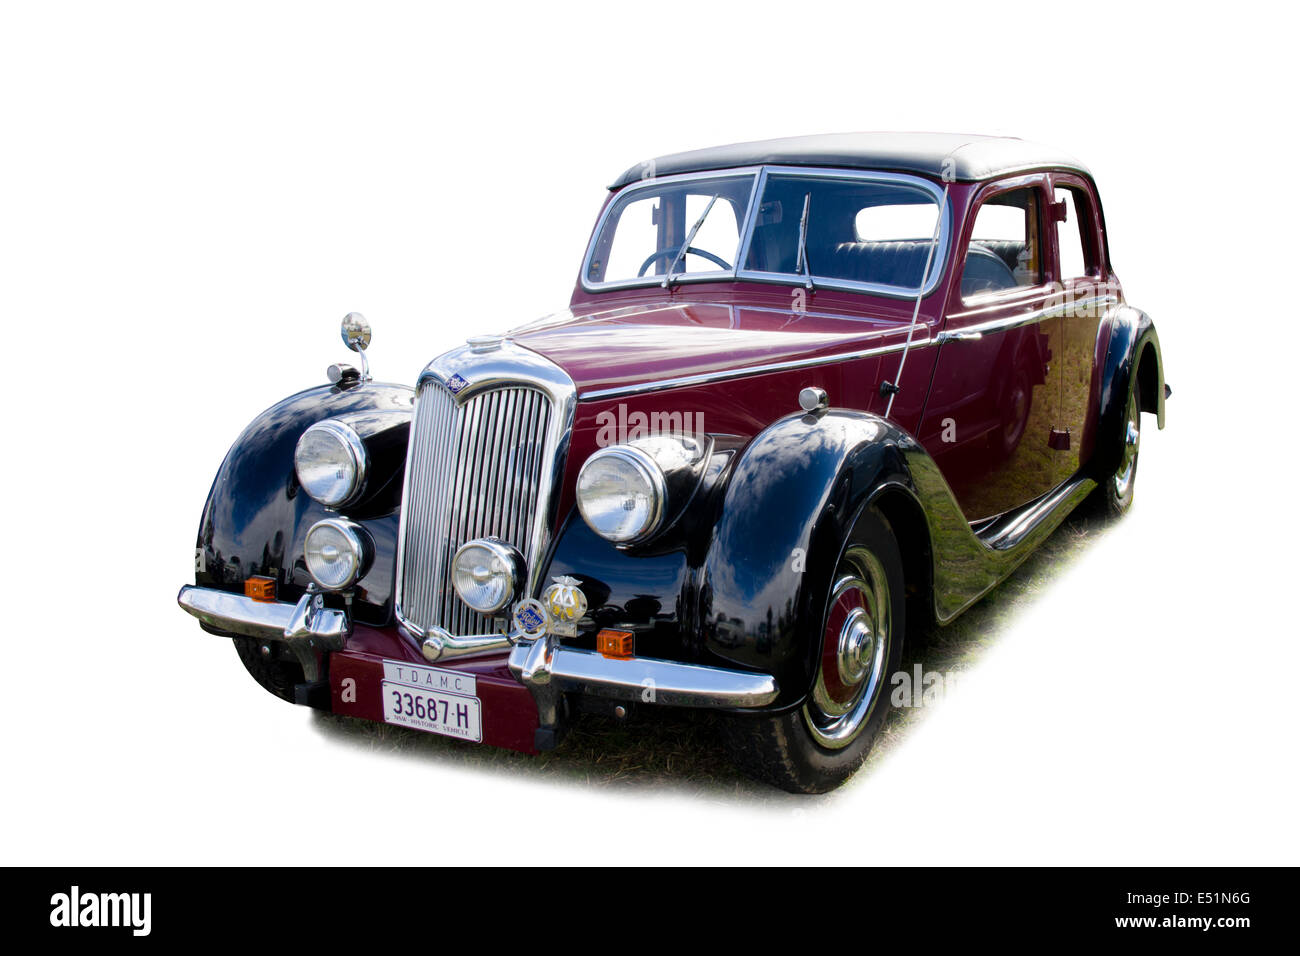 Three quarter view of a 1950s British Riley saloon car - Stock Image